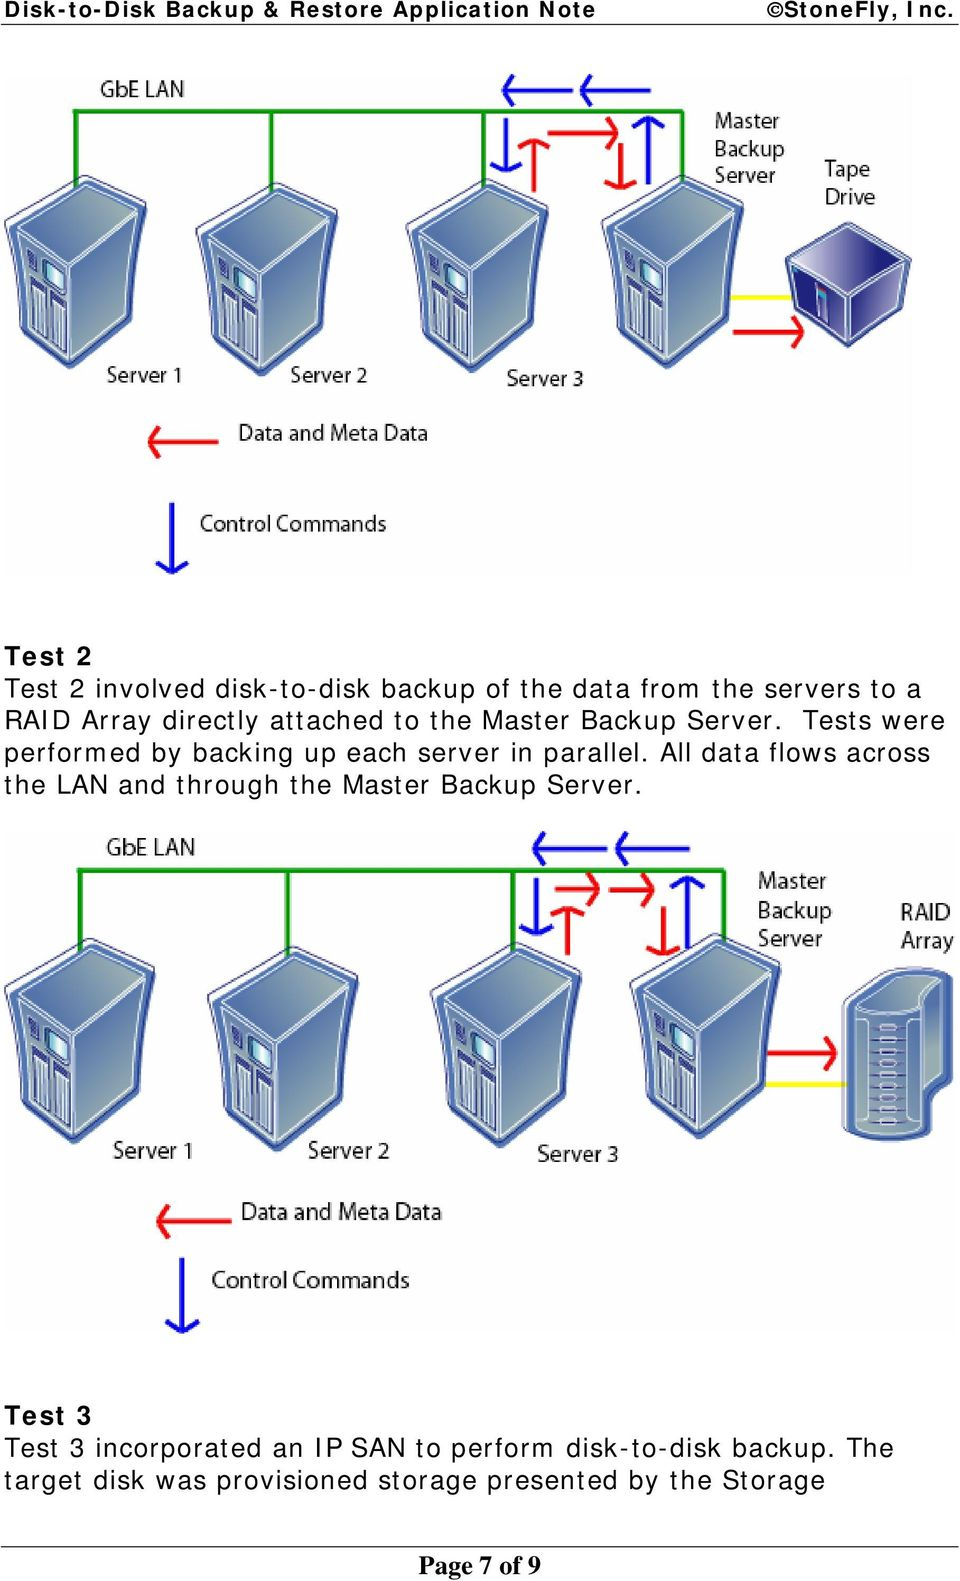 All data flows across the LAN and through the Master Backup Server.